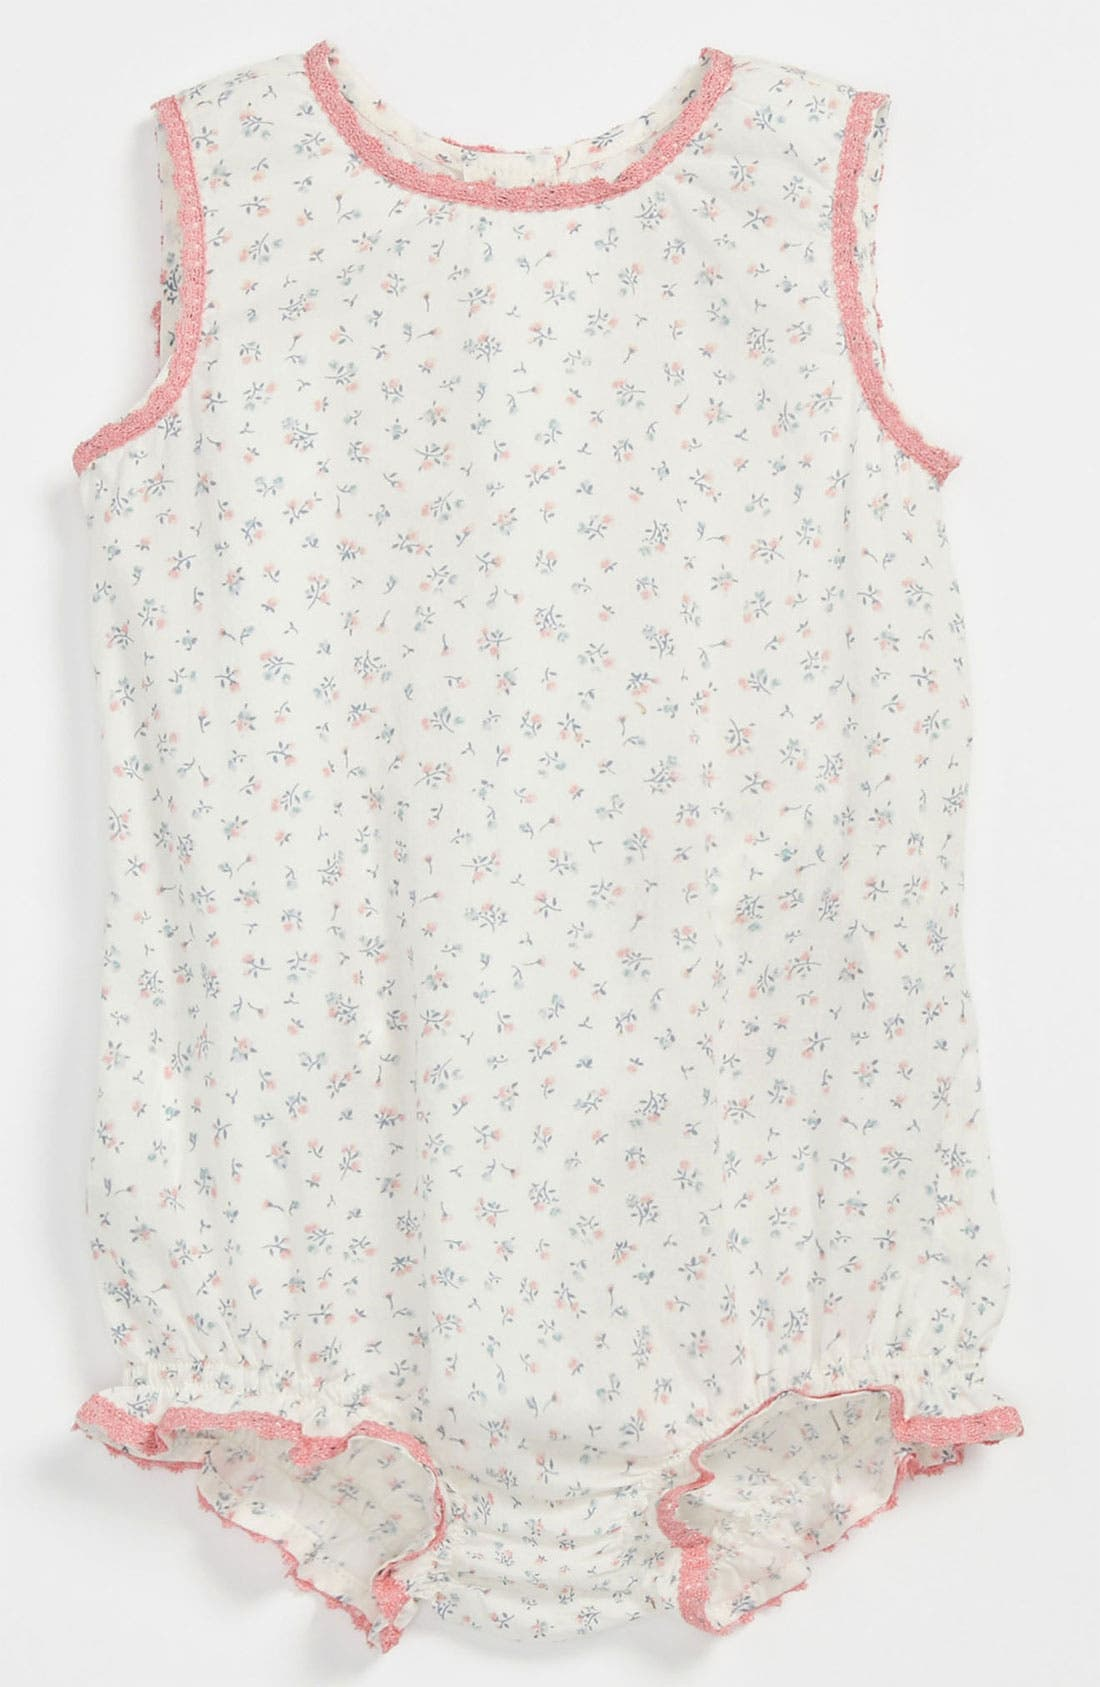 Alternate Image 1 Selected - United Colors of Benetton Kids Woven Bodysuit (Baby)